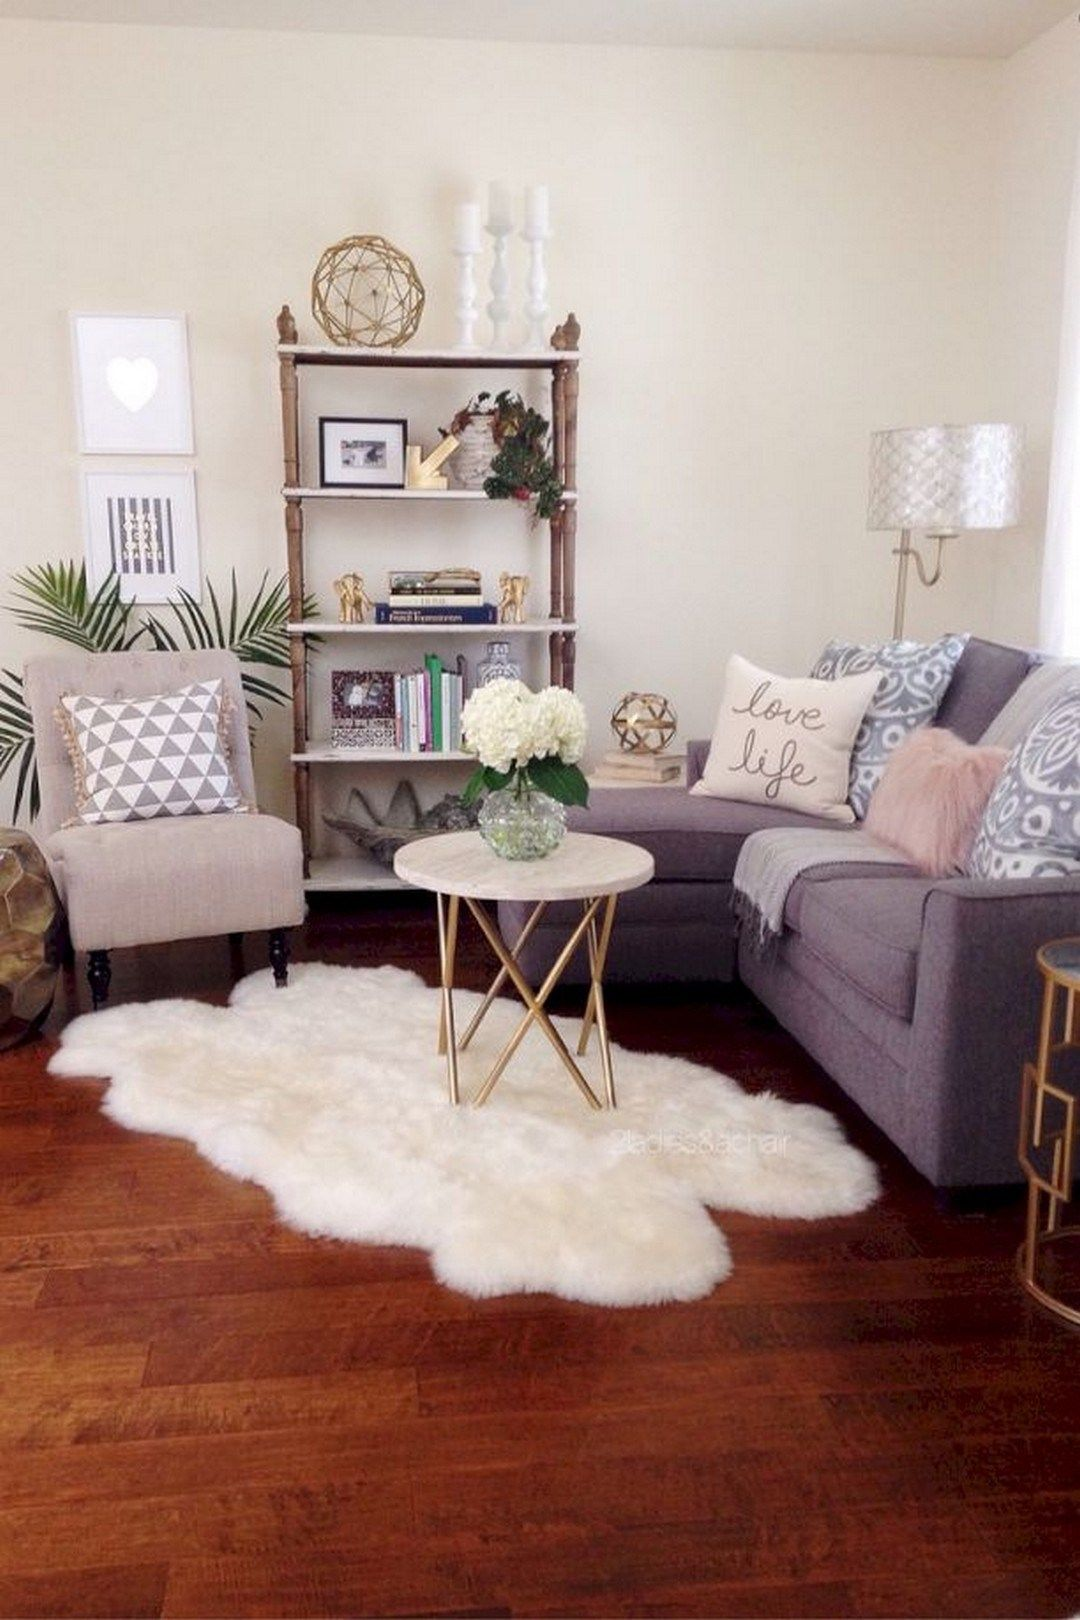 Cozy Small Apartment Decorating Ideas On A Budget 1 First